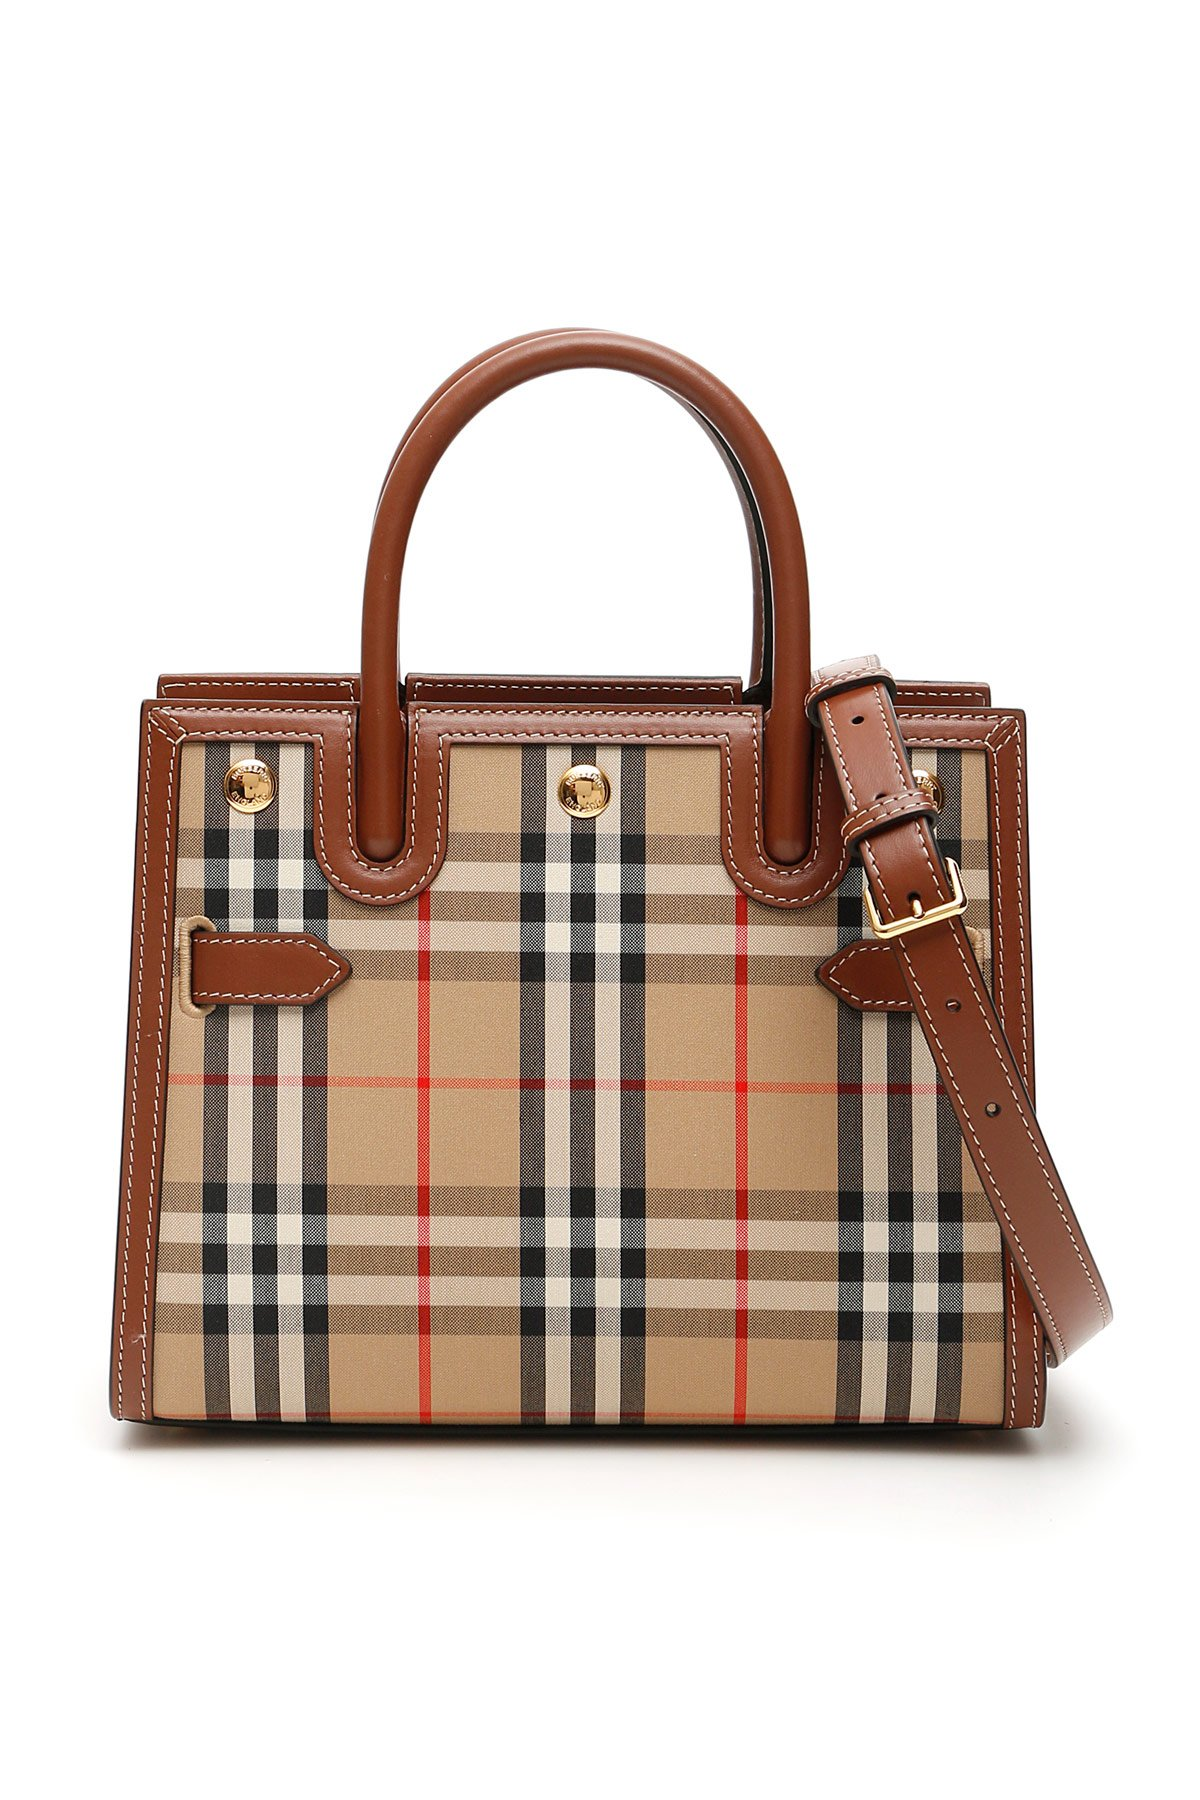 Burberry shopping check baby title